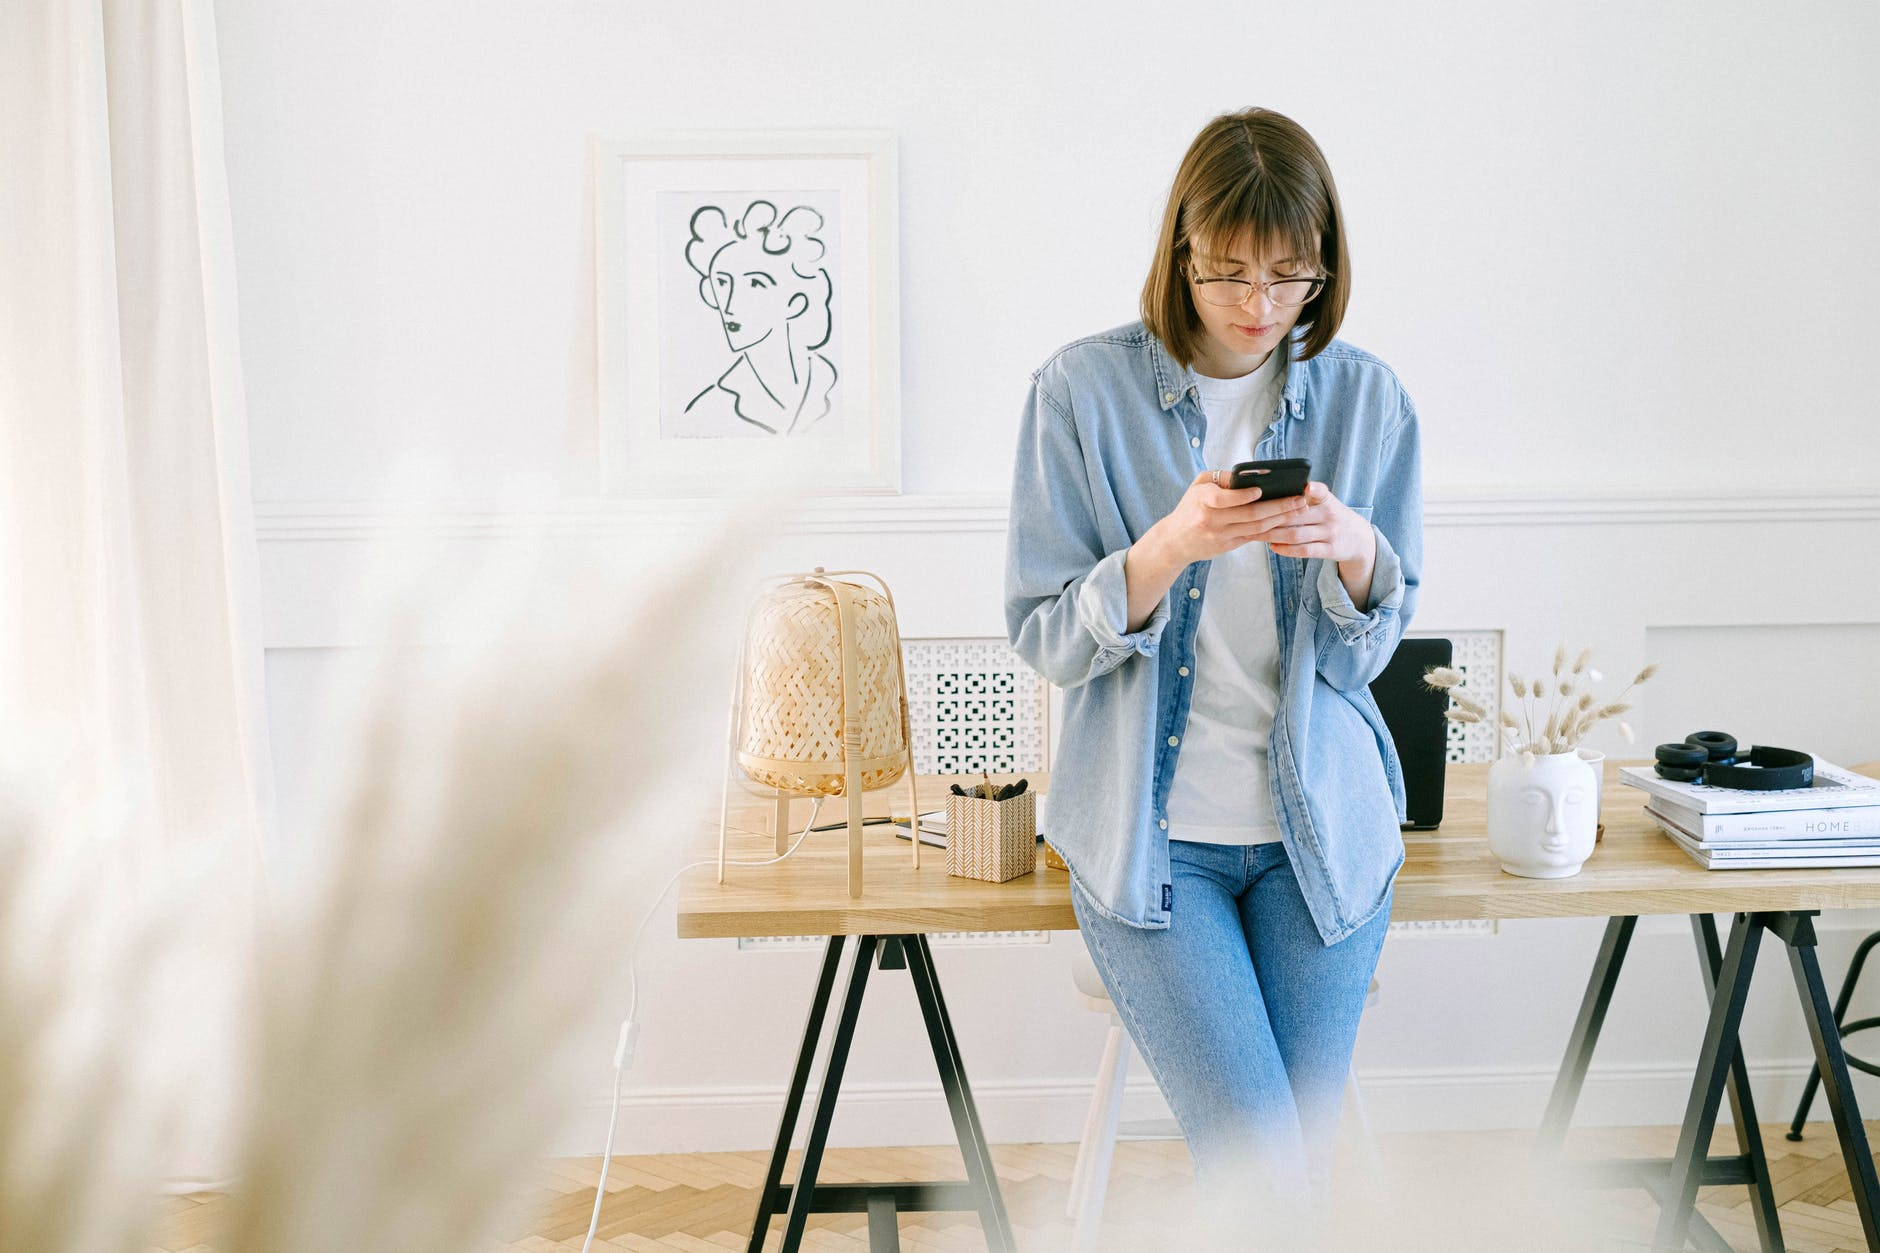 woman using her smartphone